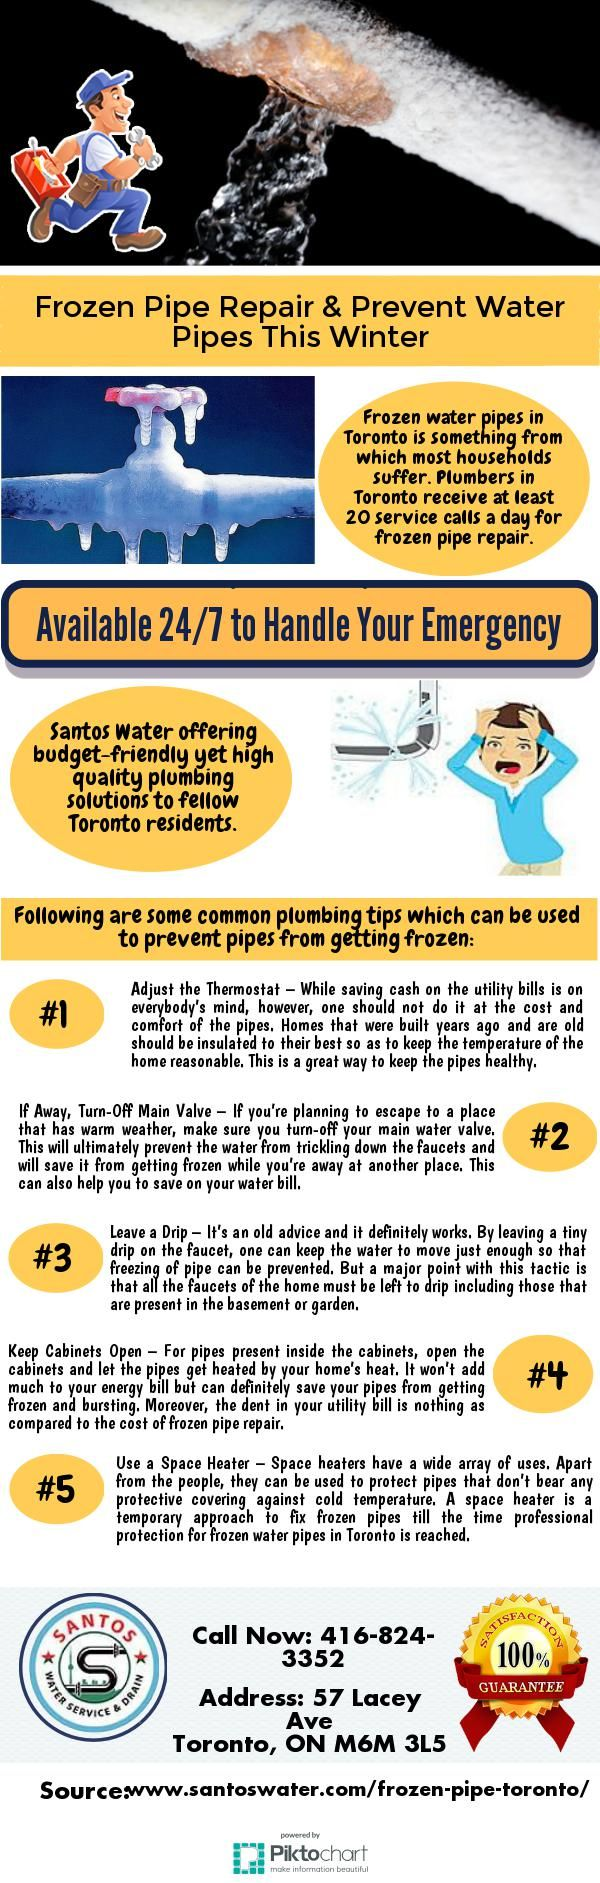 Santos Water is one of the best frozen pipes repair, prevent water pipes, fixing and thawing Company in Toronto. This info-graphic help to you prevent water pipes. Call us any time 416-824 – 3352 to get a quote on our services.